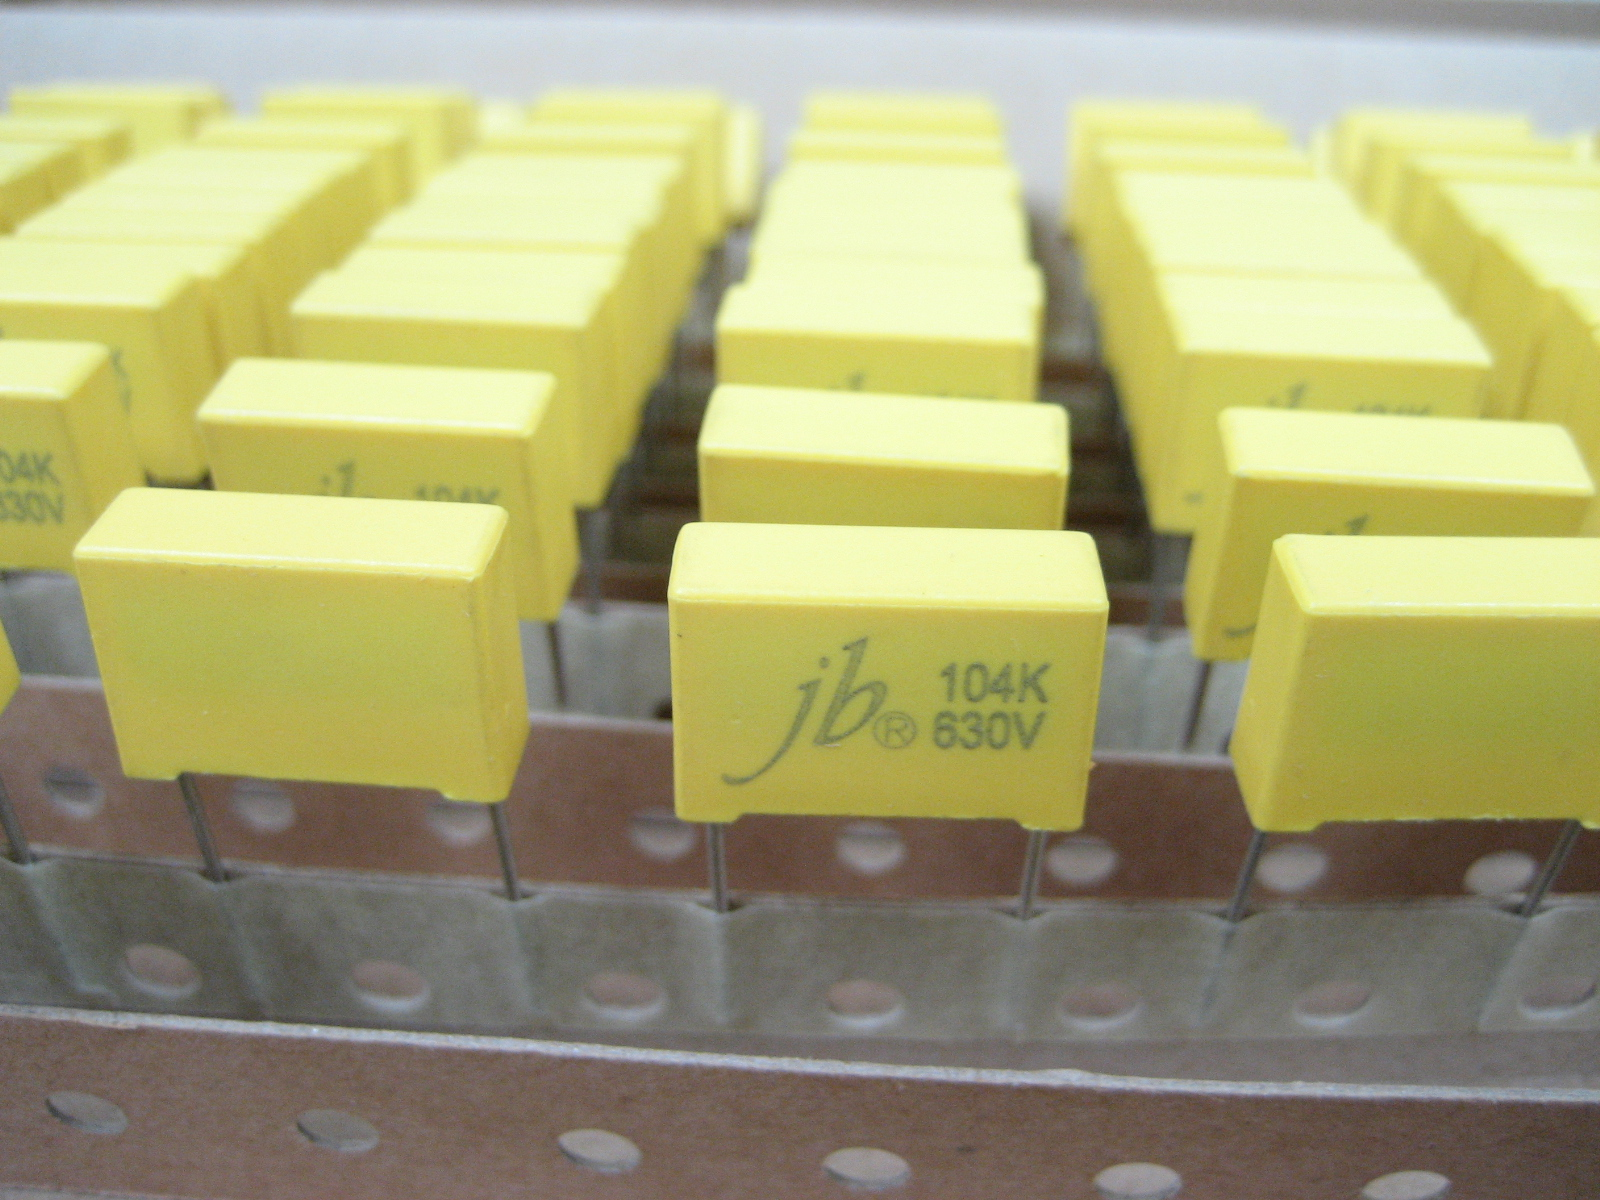 JFM--Box Type Metallized Polypropylene Film Capacitor